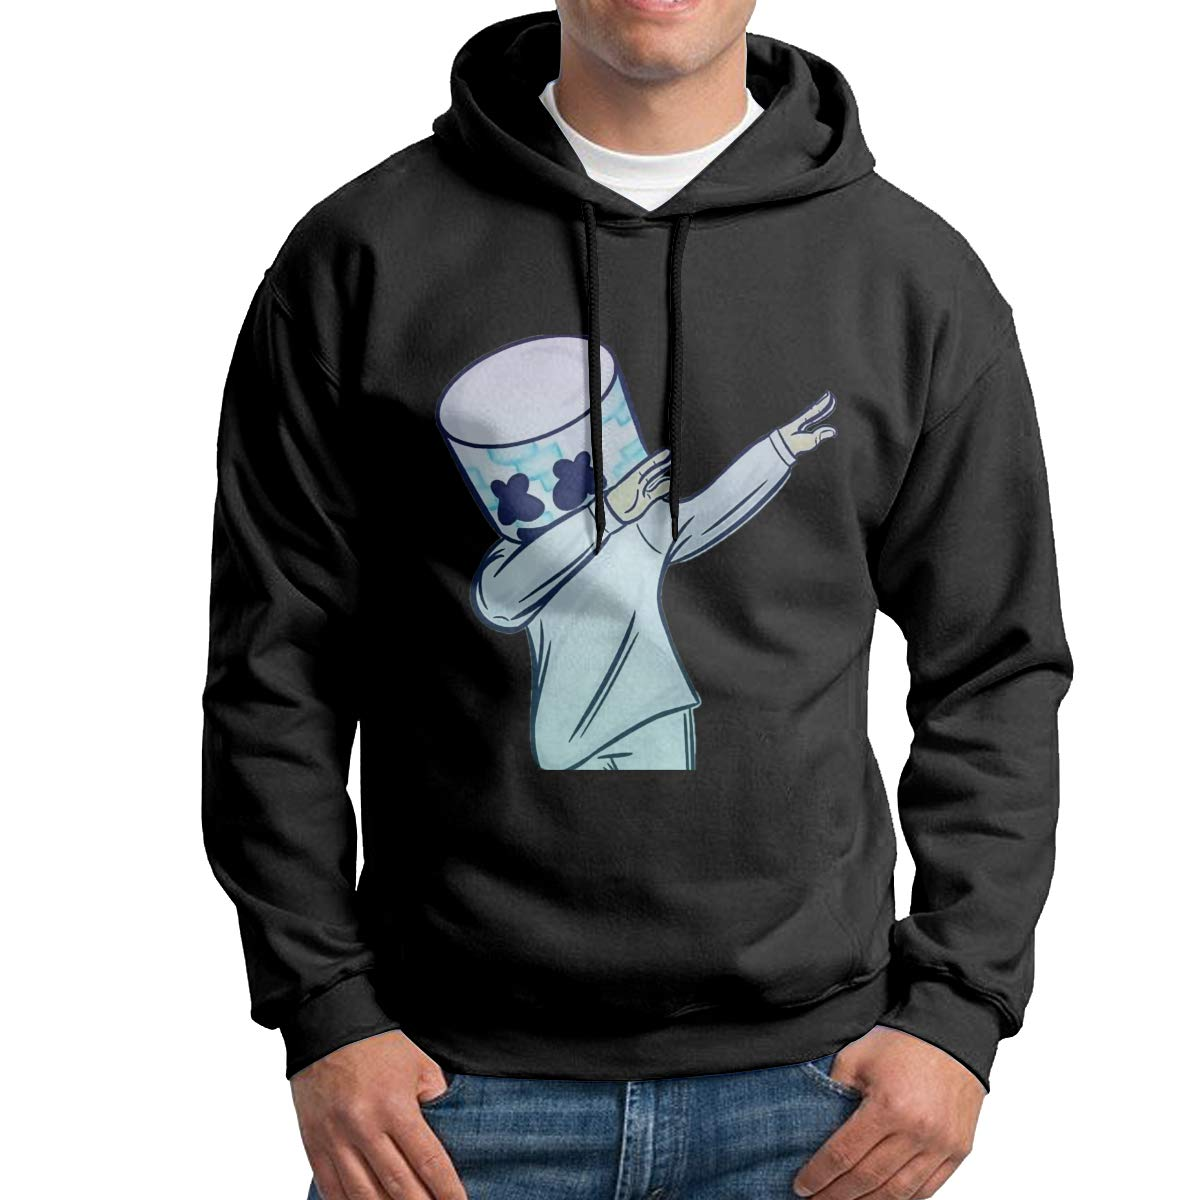 Andy And Reid Marshmello Youth Hoodies Men Designs